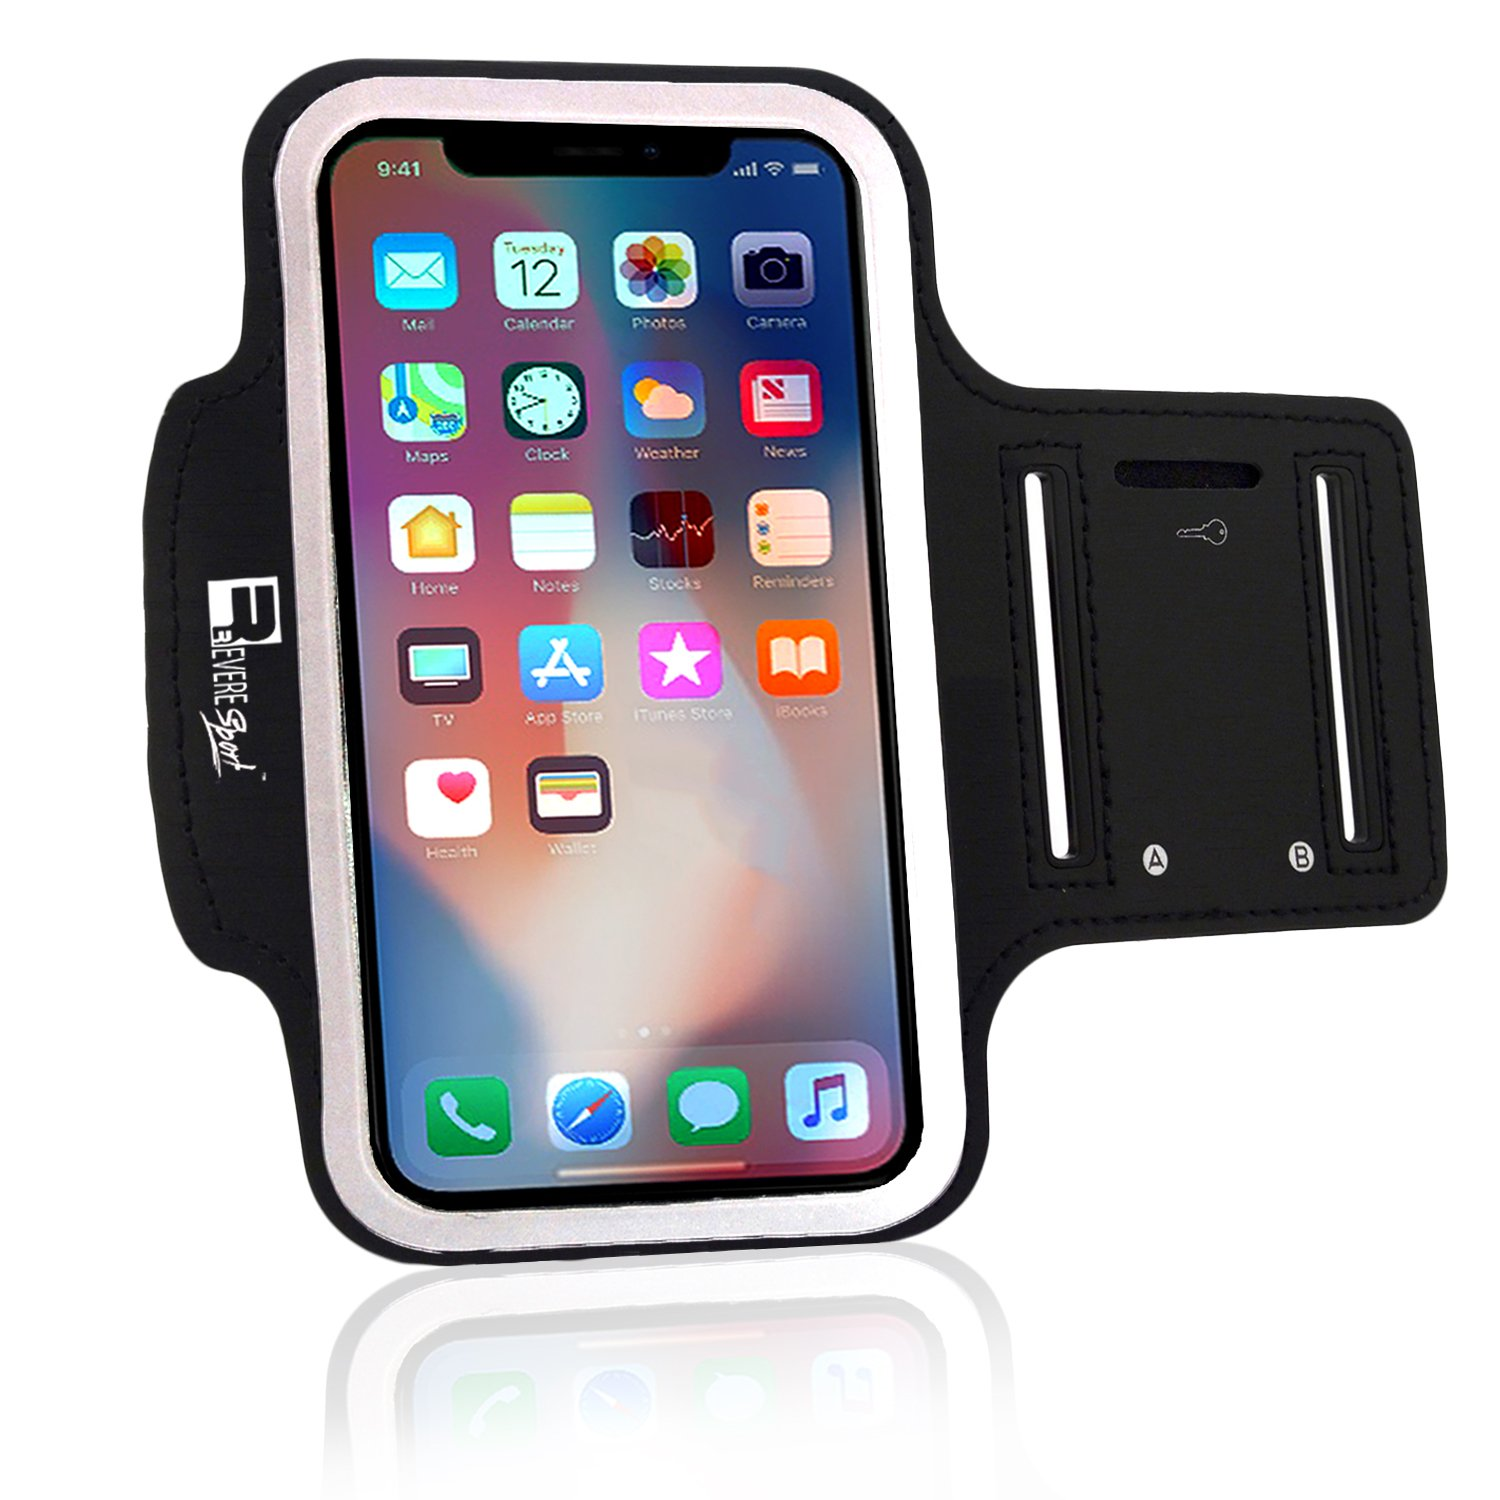 Premium iPhone X/10 Running Armband with Full Screen Access. Sports Phone Arm Case Holder for Jogging, Gym Workouts & Exercise by Revere Sport (Image #1)